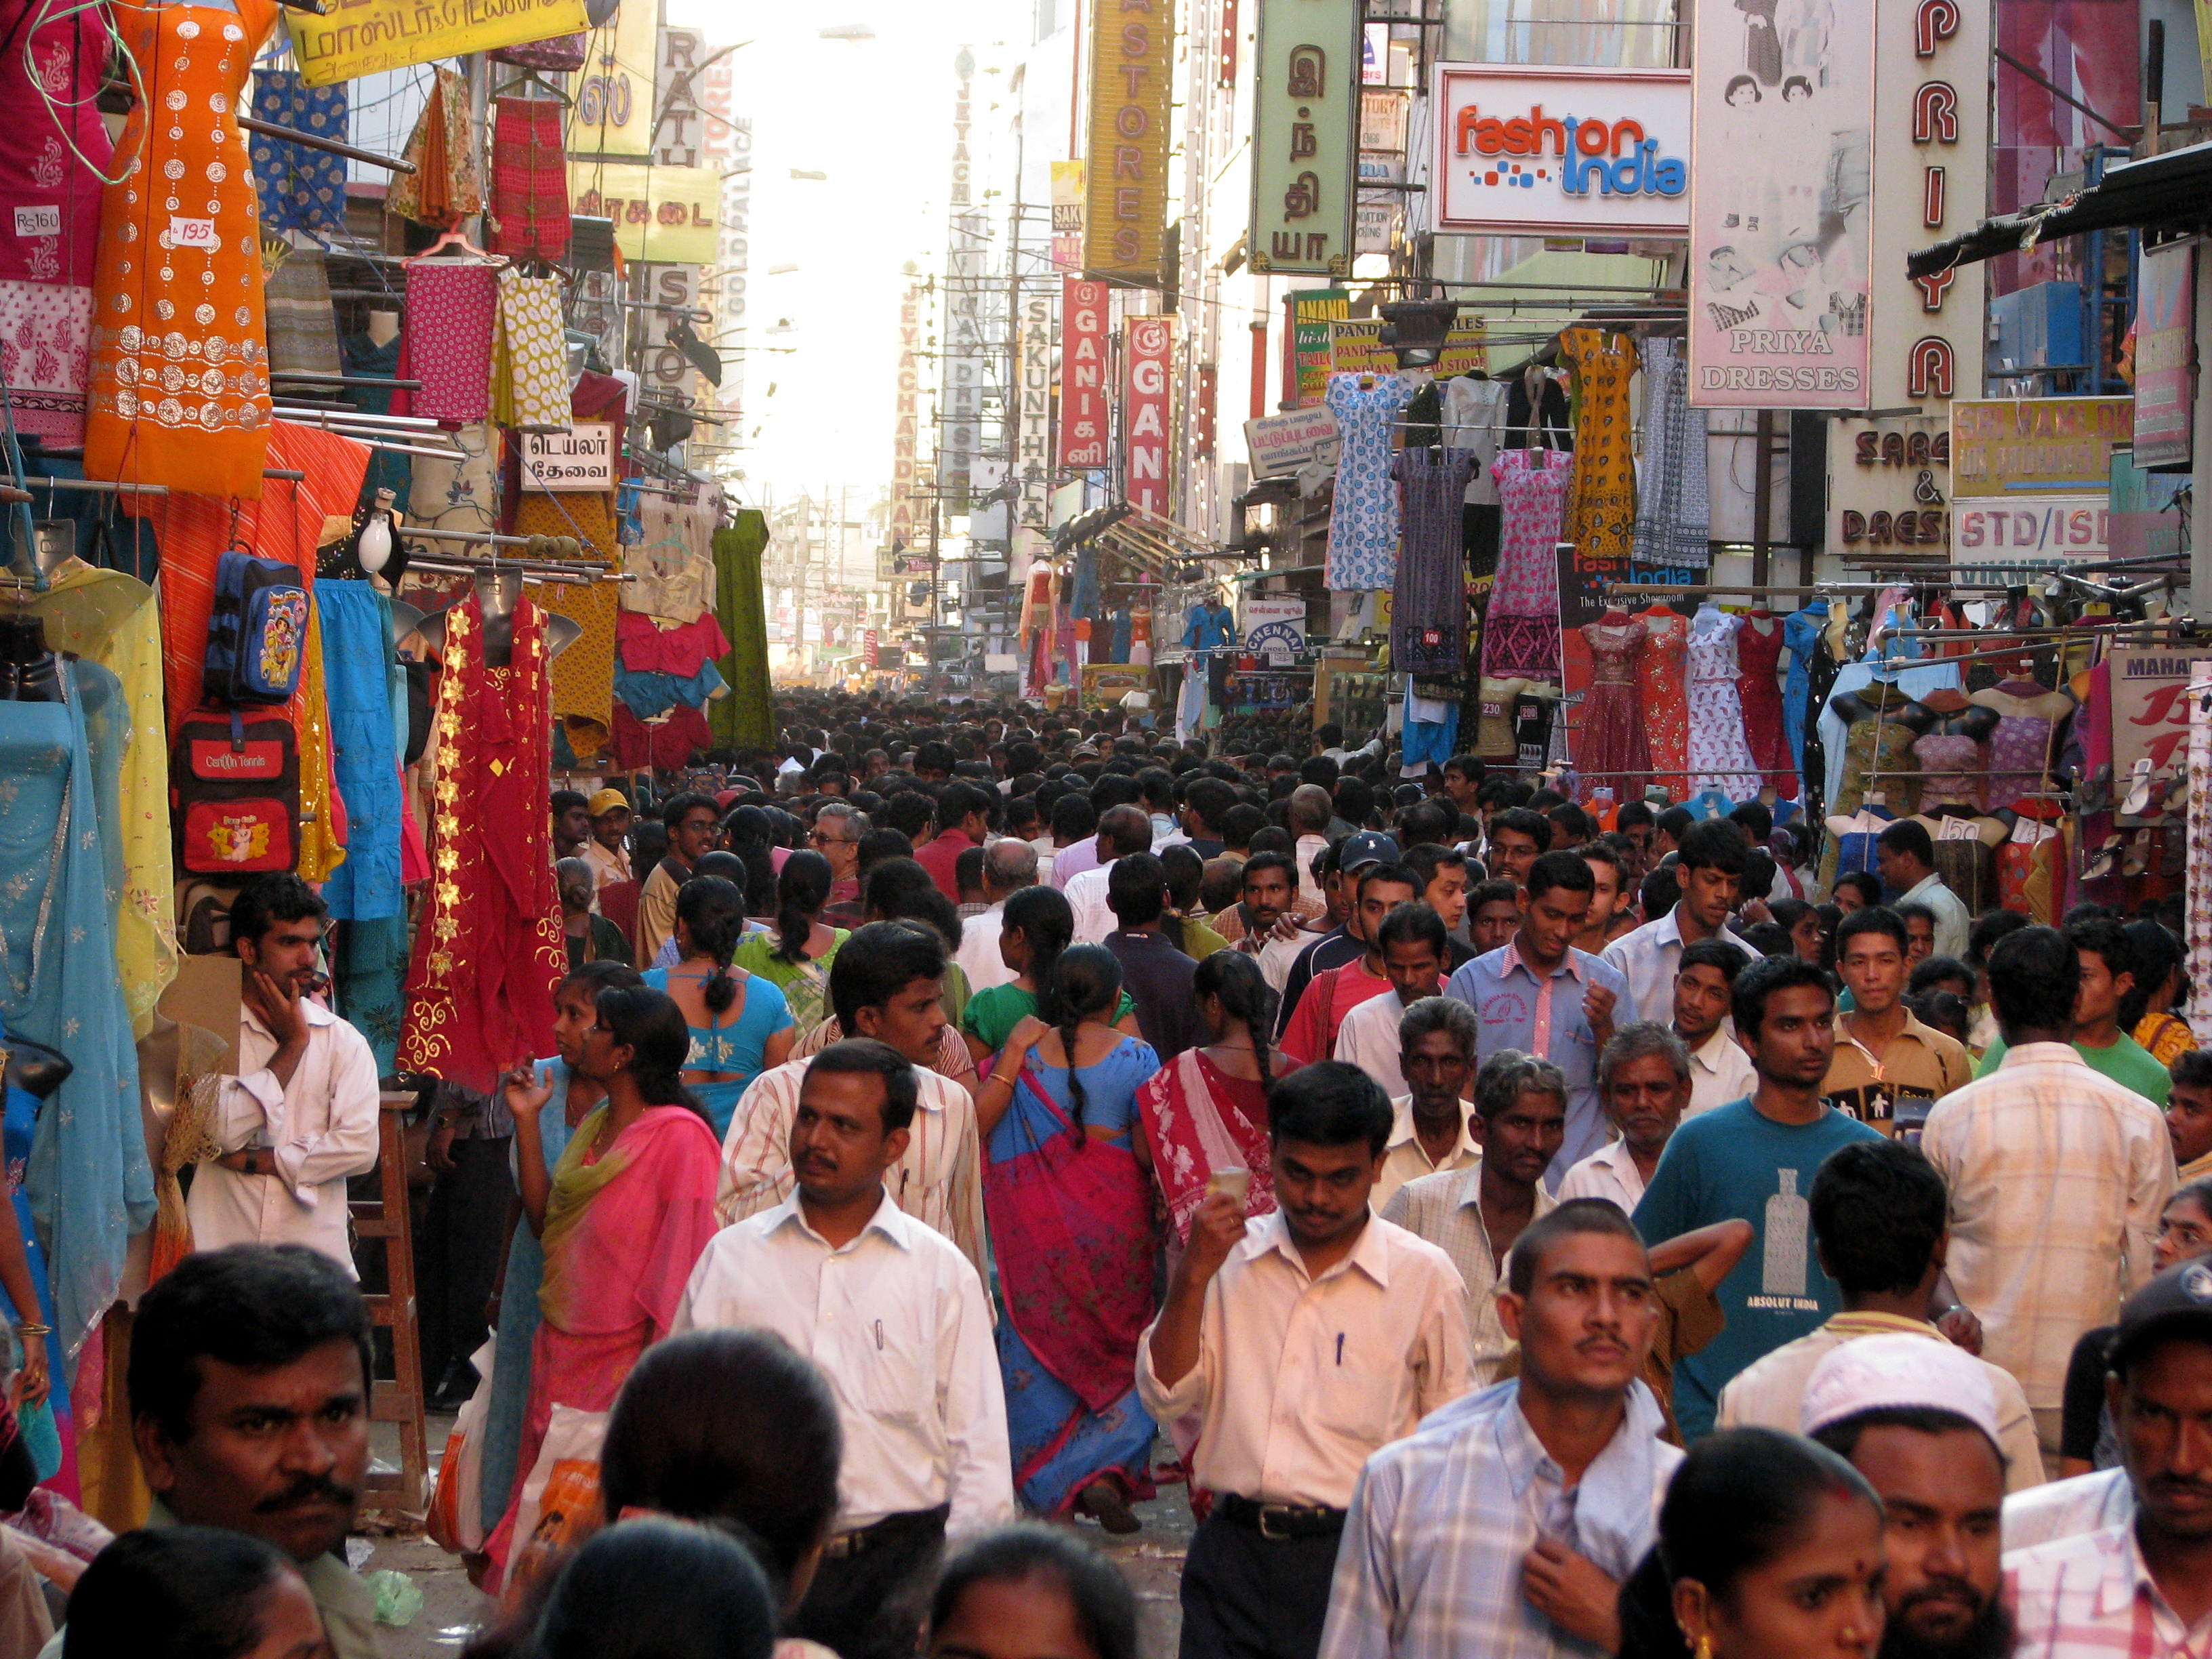 Rising population is a real concern. India is slated to go past China as the most populous country in the world by 2024. (Source: Wikimedia Commons)